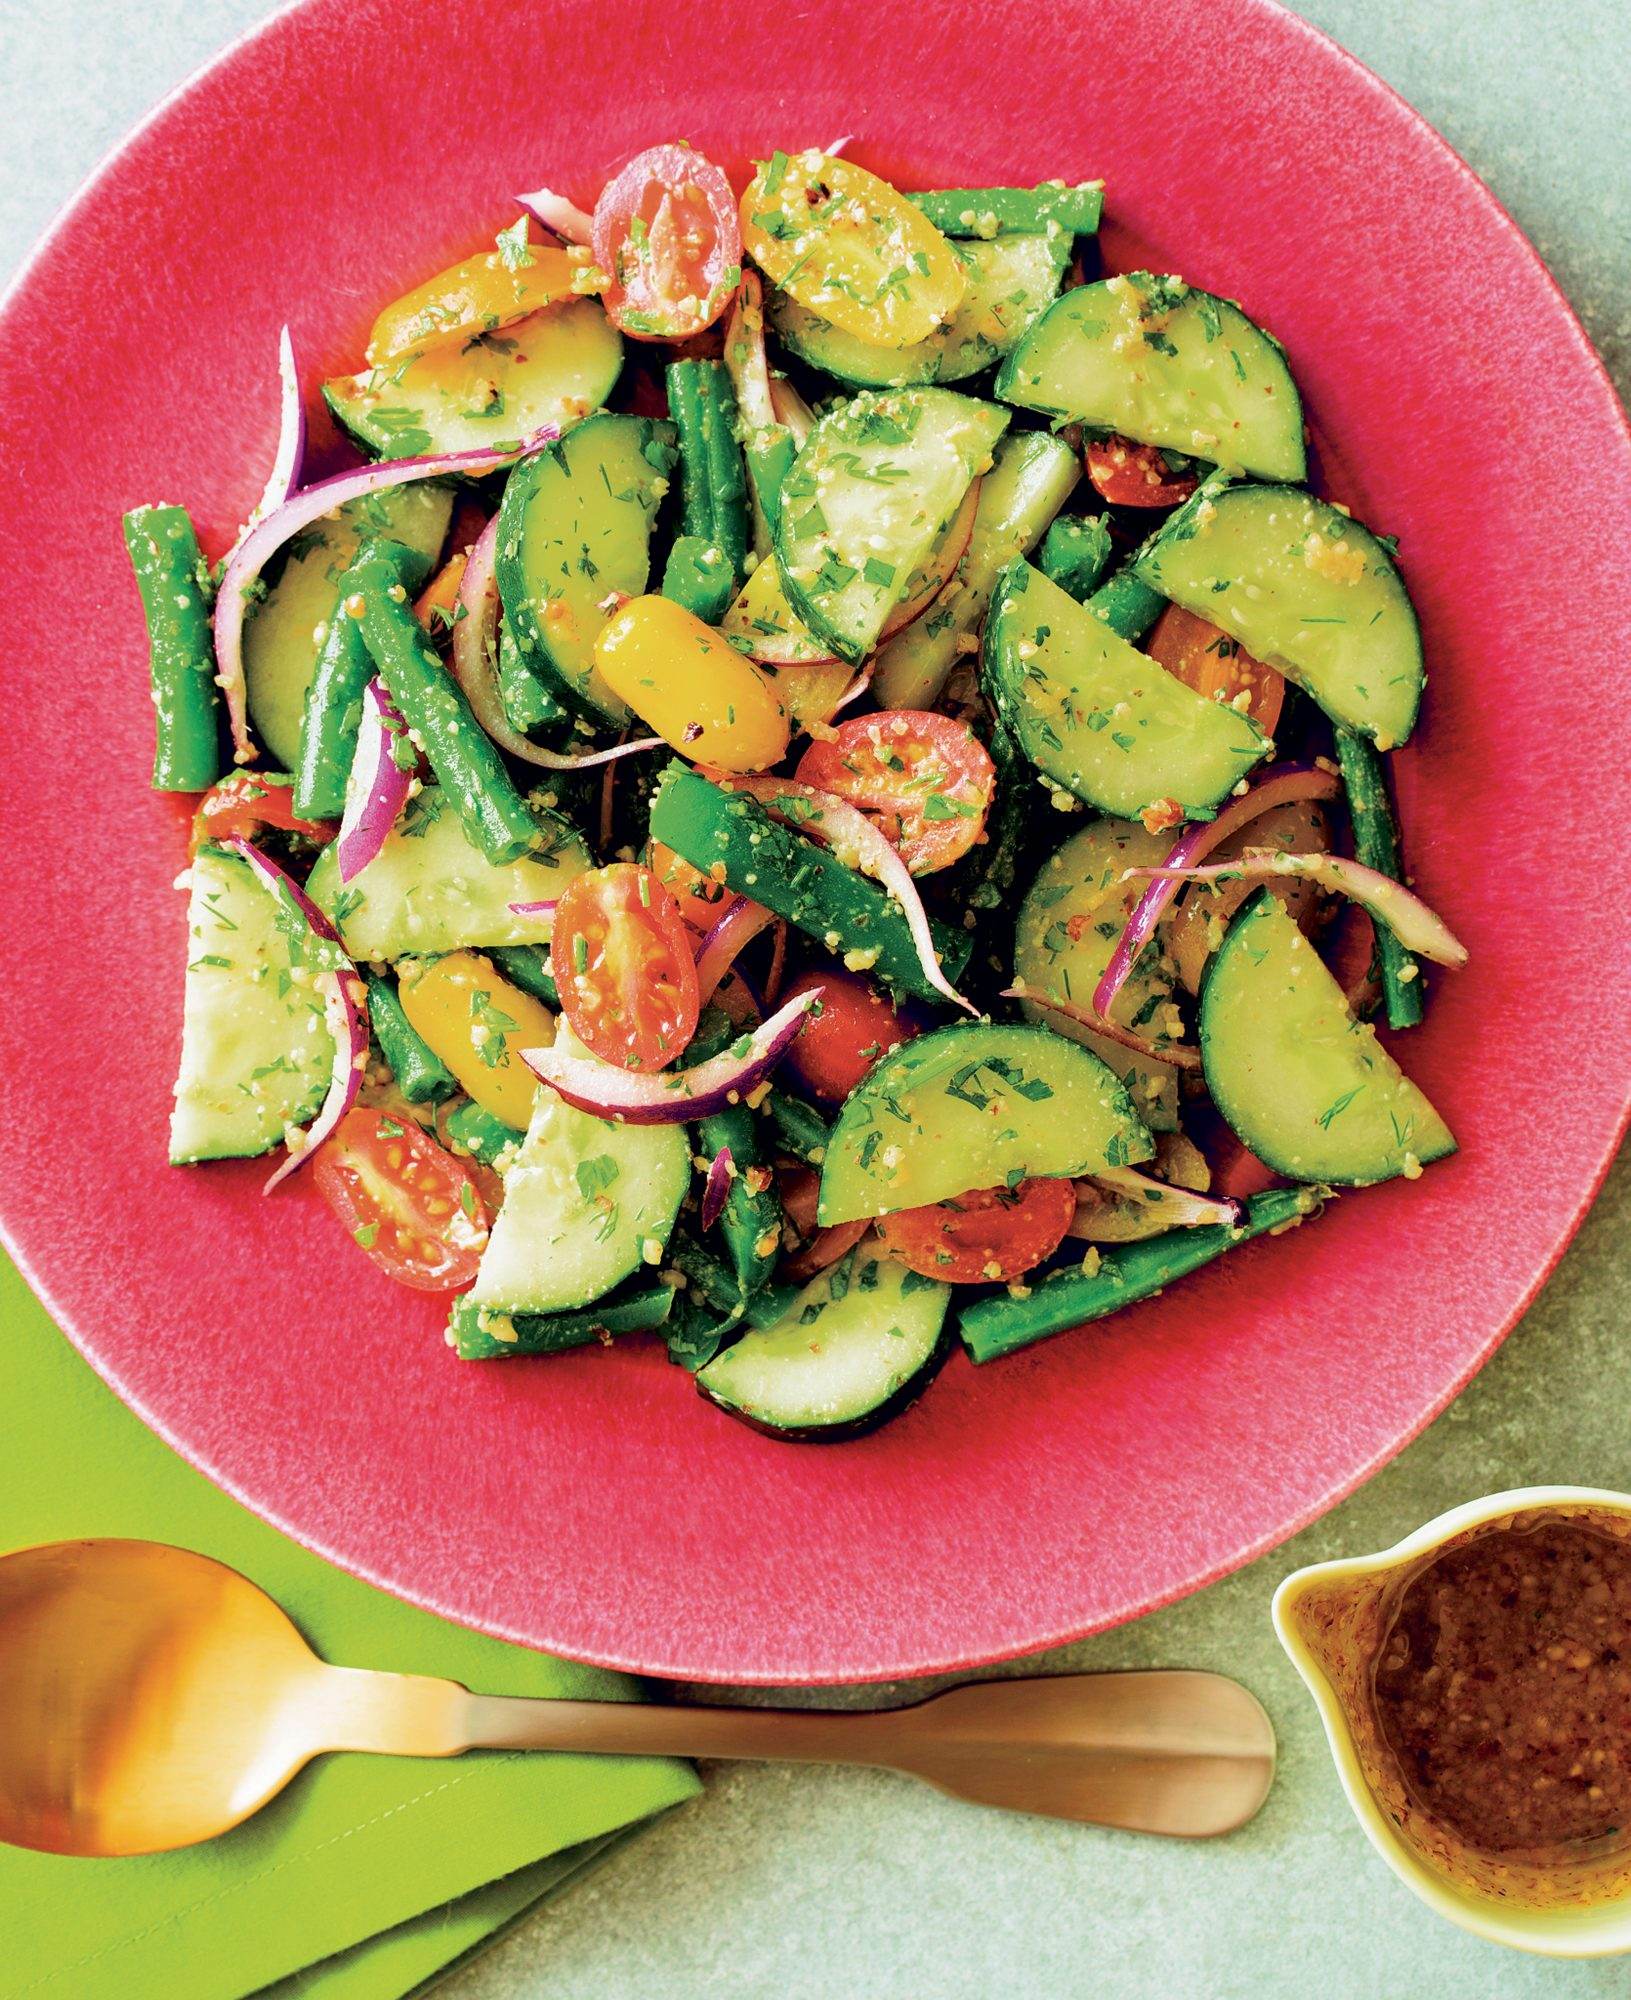 Tomato, Cucumber, and Green Bean Salad